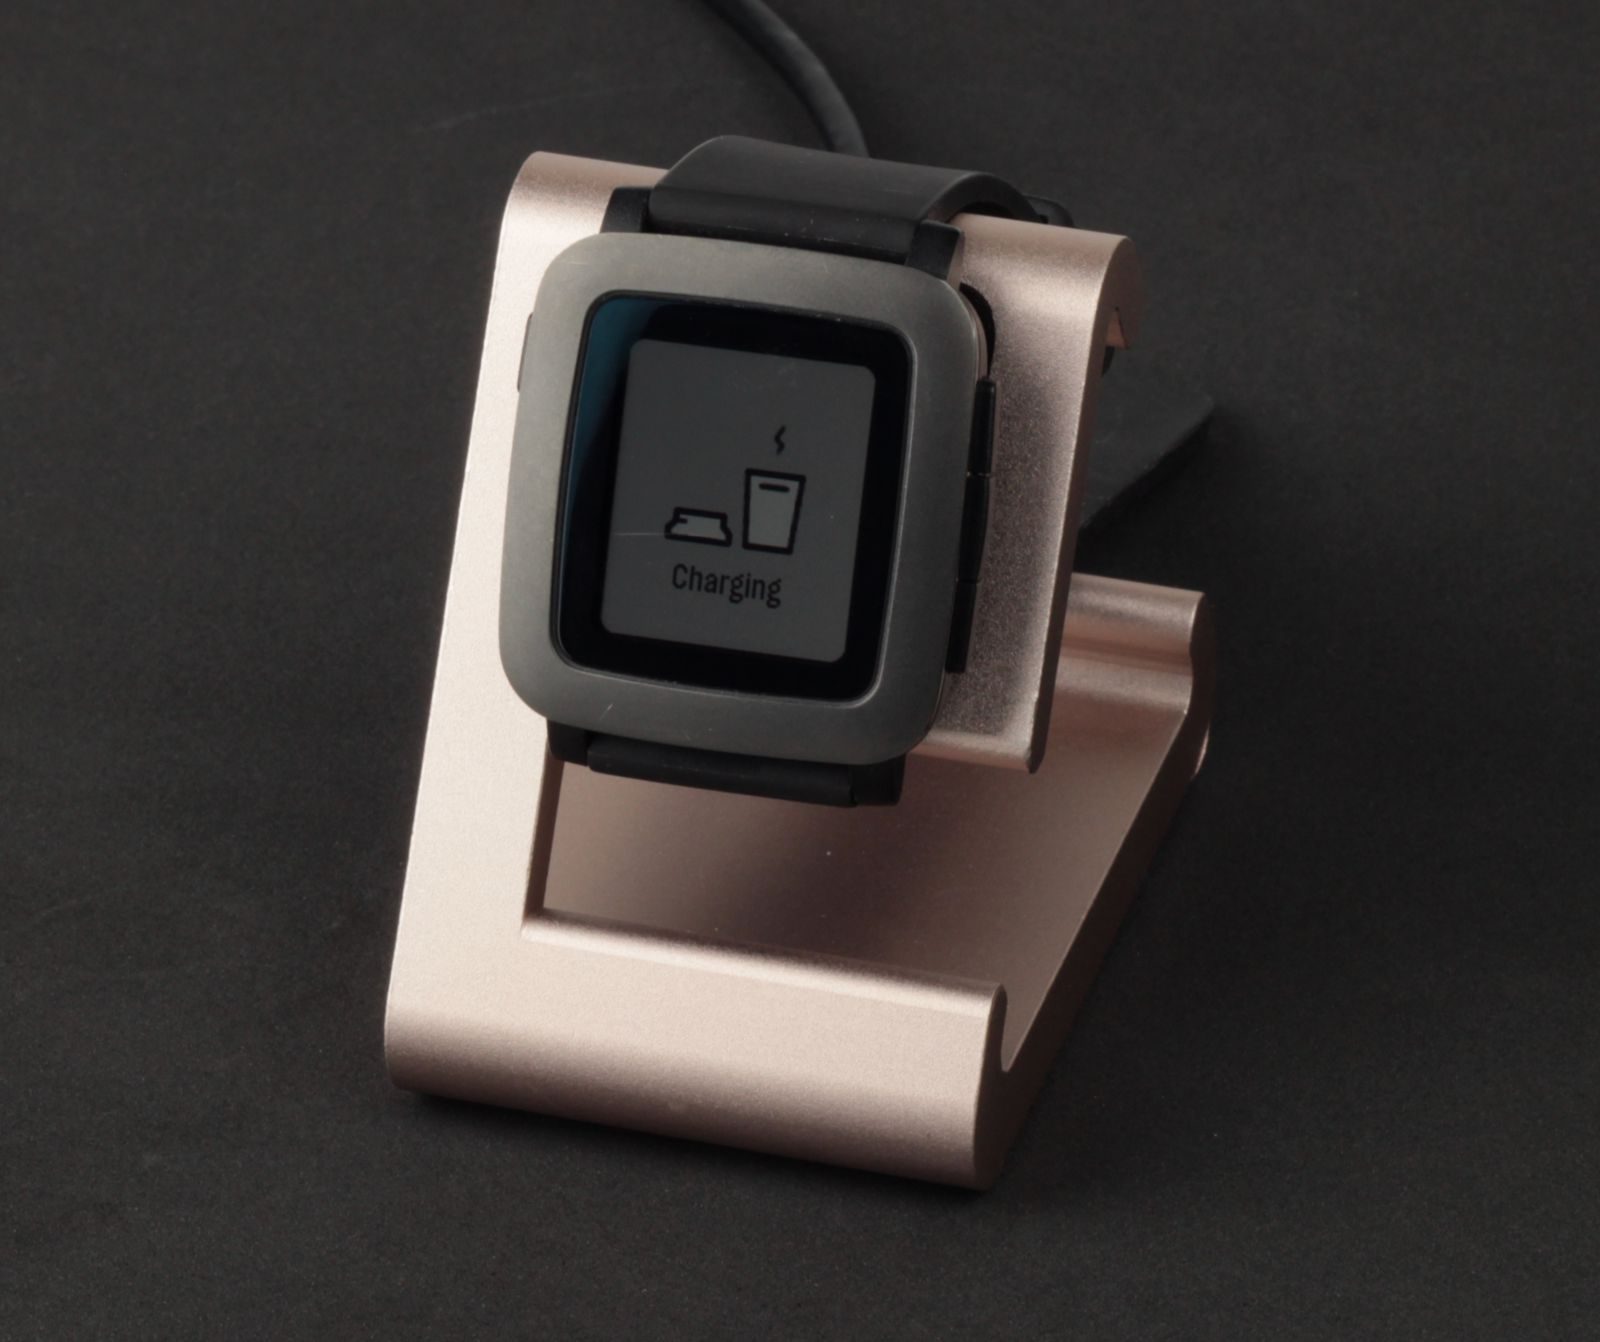 TimeDock Rose Gold with Pebble Time Smartwatch